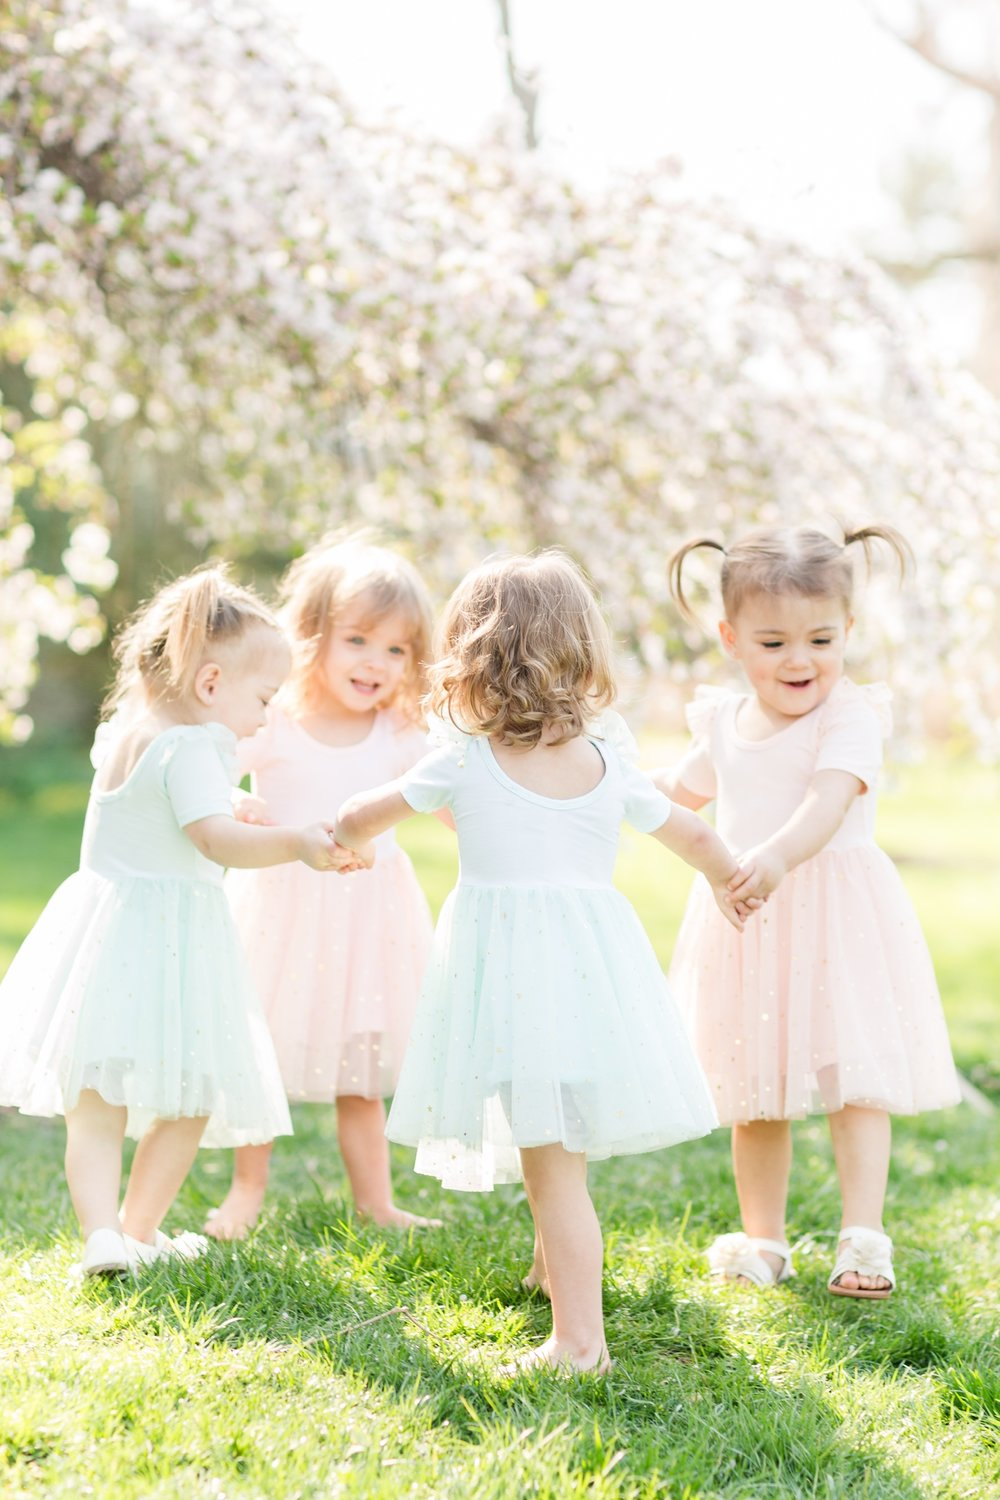 See more from this   ballerina family session at Sherwood Gardens  !